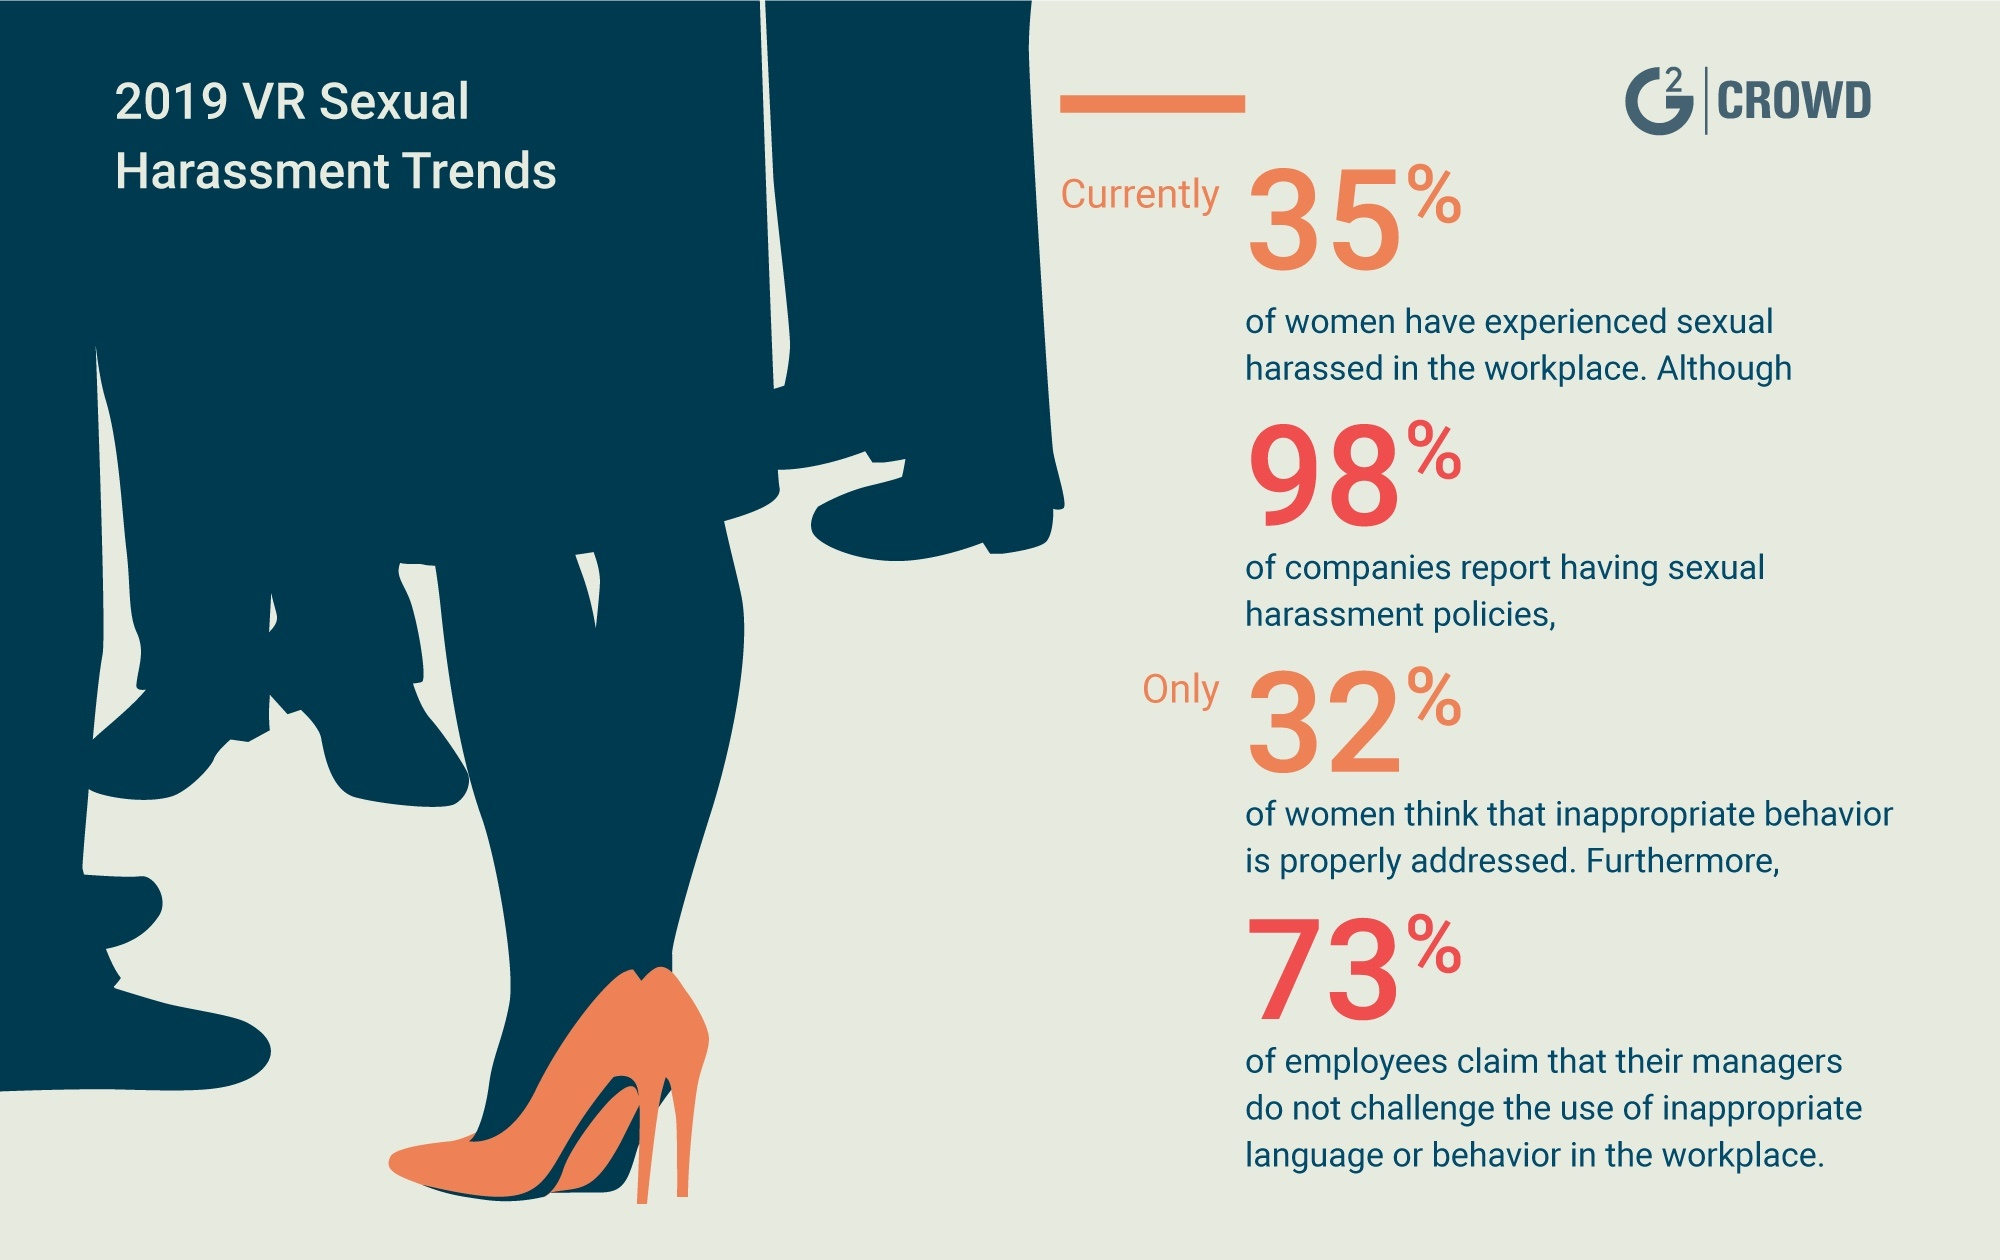 sexual-harassment-trends-for-2019